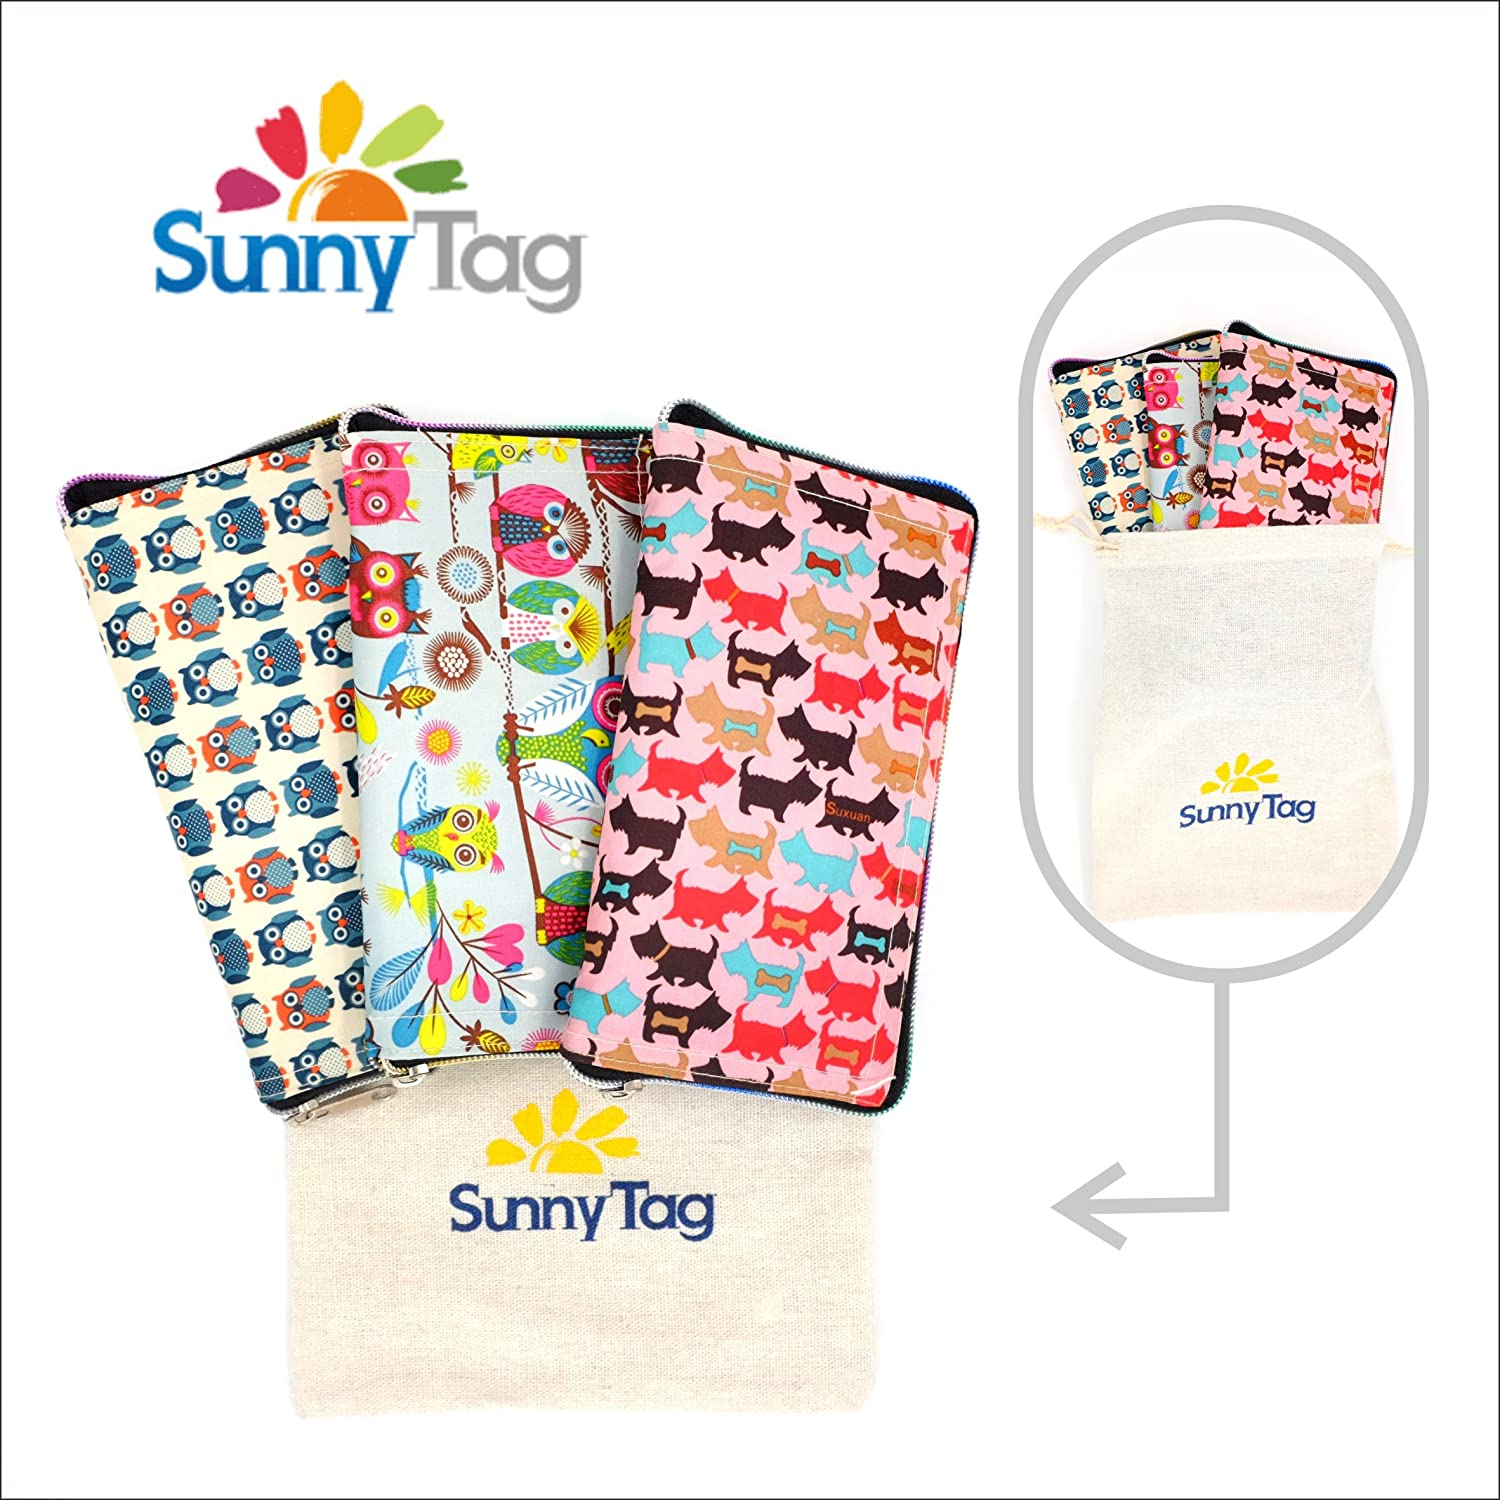 Sunnyタグ折りたたみ式再利用可能なEco Friendly財布スタイルGrocery Shopping旅行バッグトートバッグPack of 3。撥水、洗濯可能、Hold Up To 33ポンドまたは15 kg L ShoppingBag3PC B06XFZGCB6 Creatures Pink Blue White|3 Creatures Pink Blue White